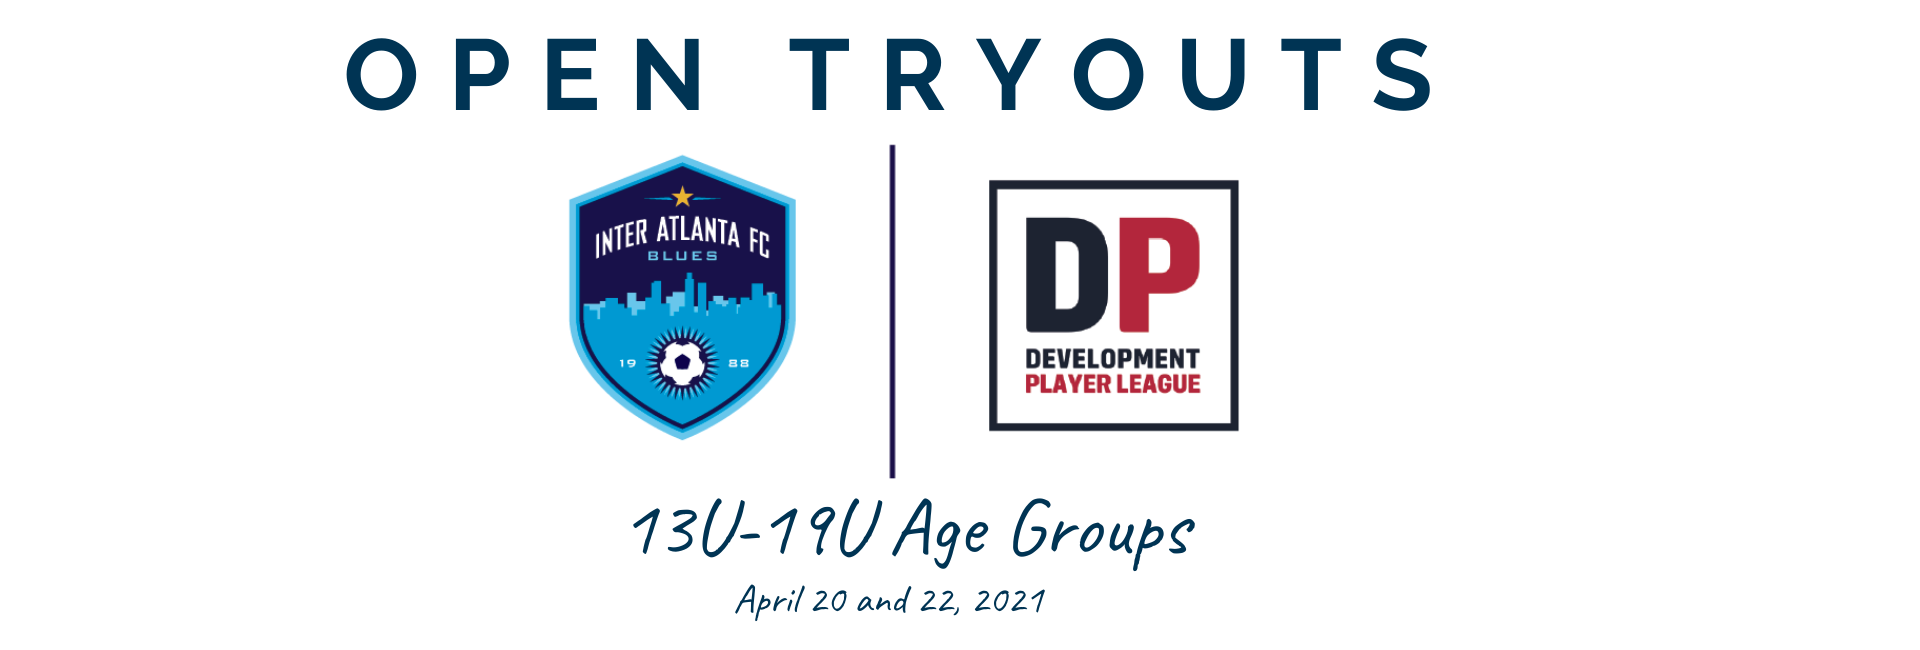 DPL Open Tryouts: April 20 & 22